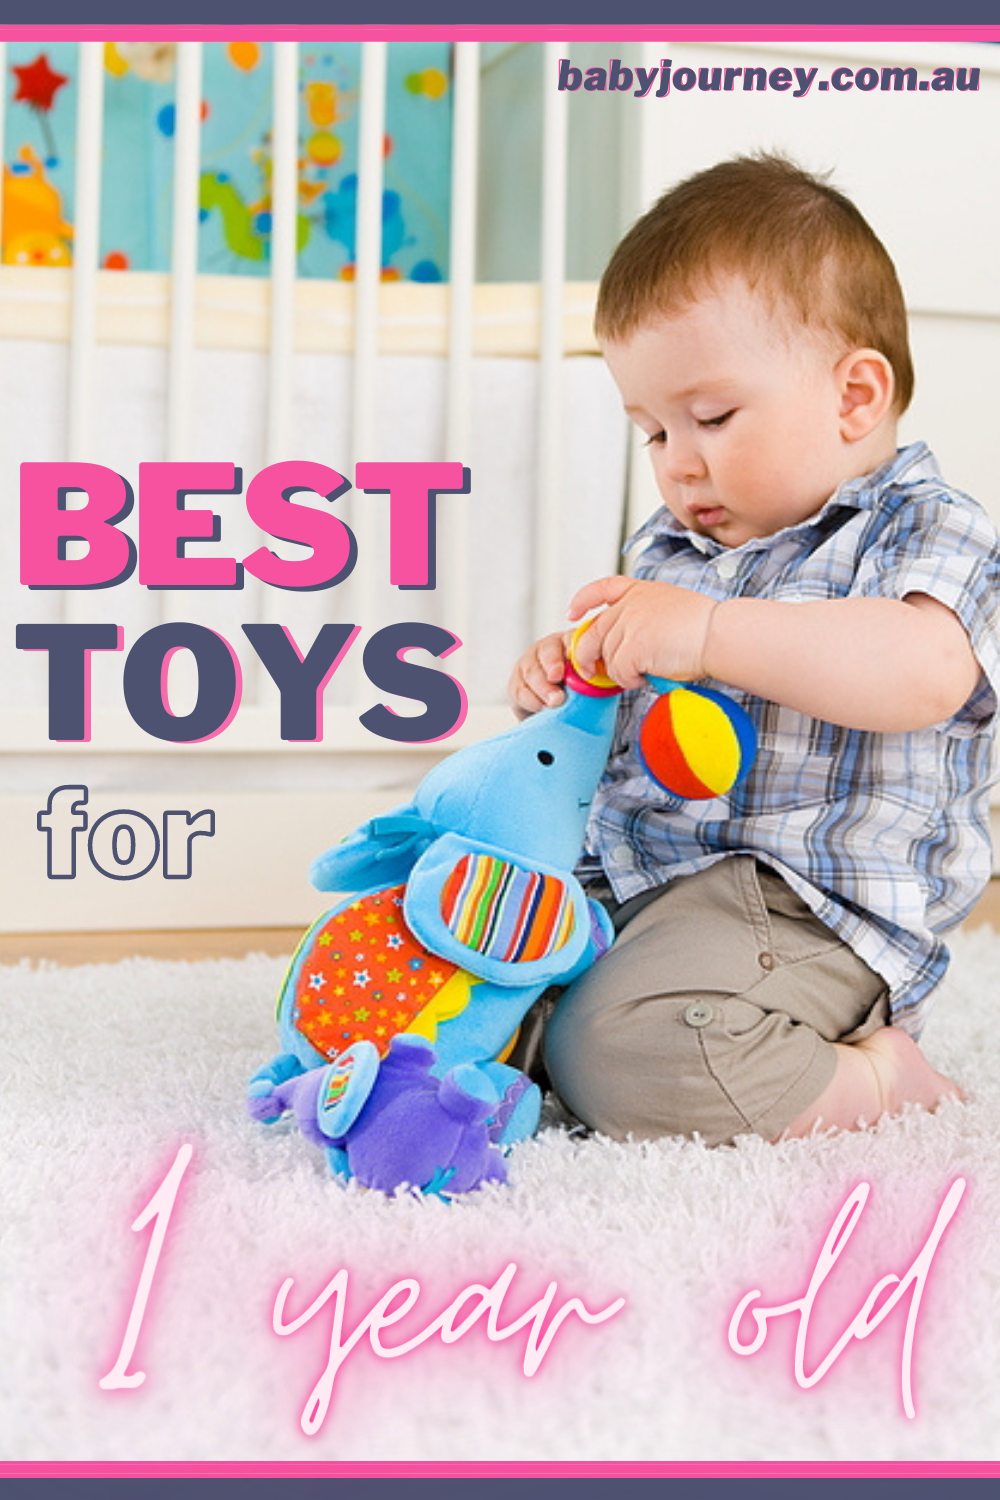 Best Toys For 1 Year Old Australia 2021